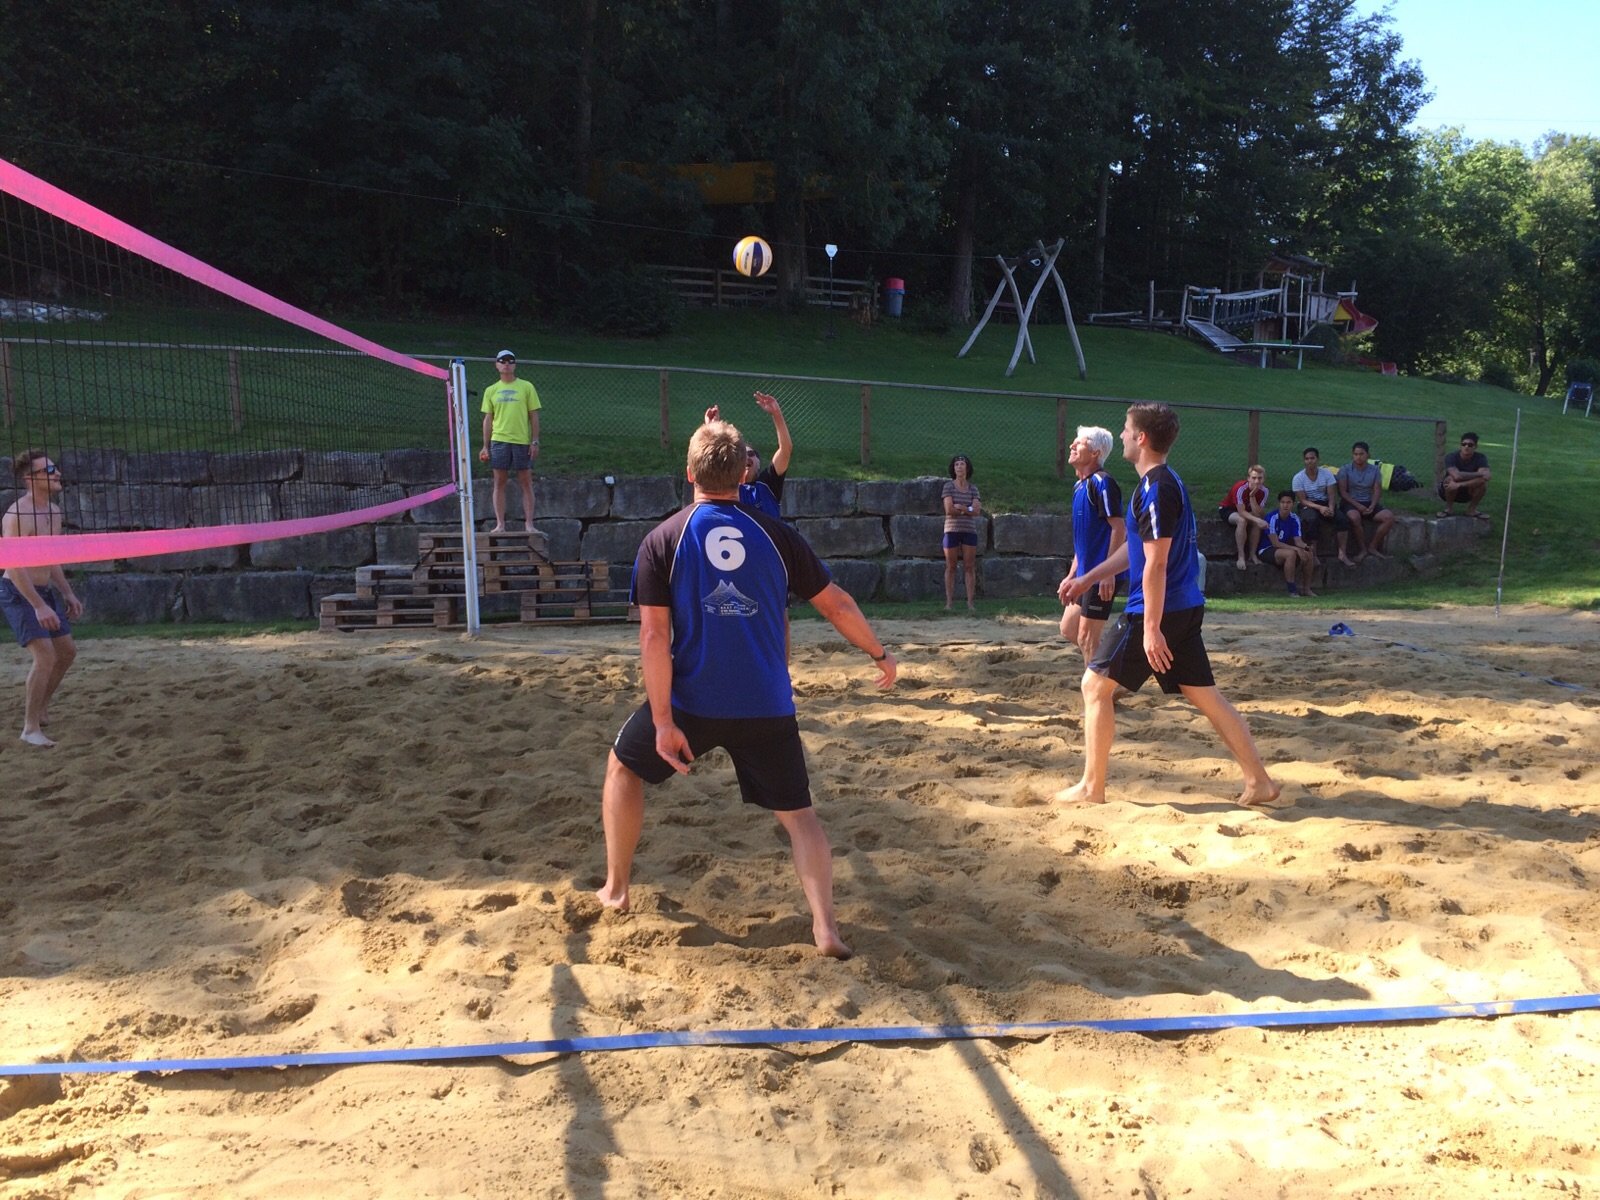 Beach-Volleyballturnier Niederweningen 2015